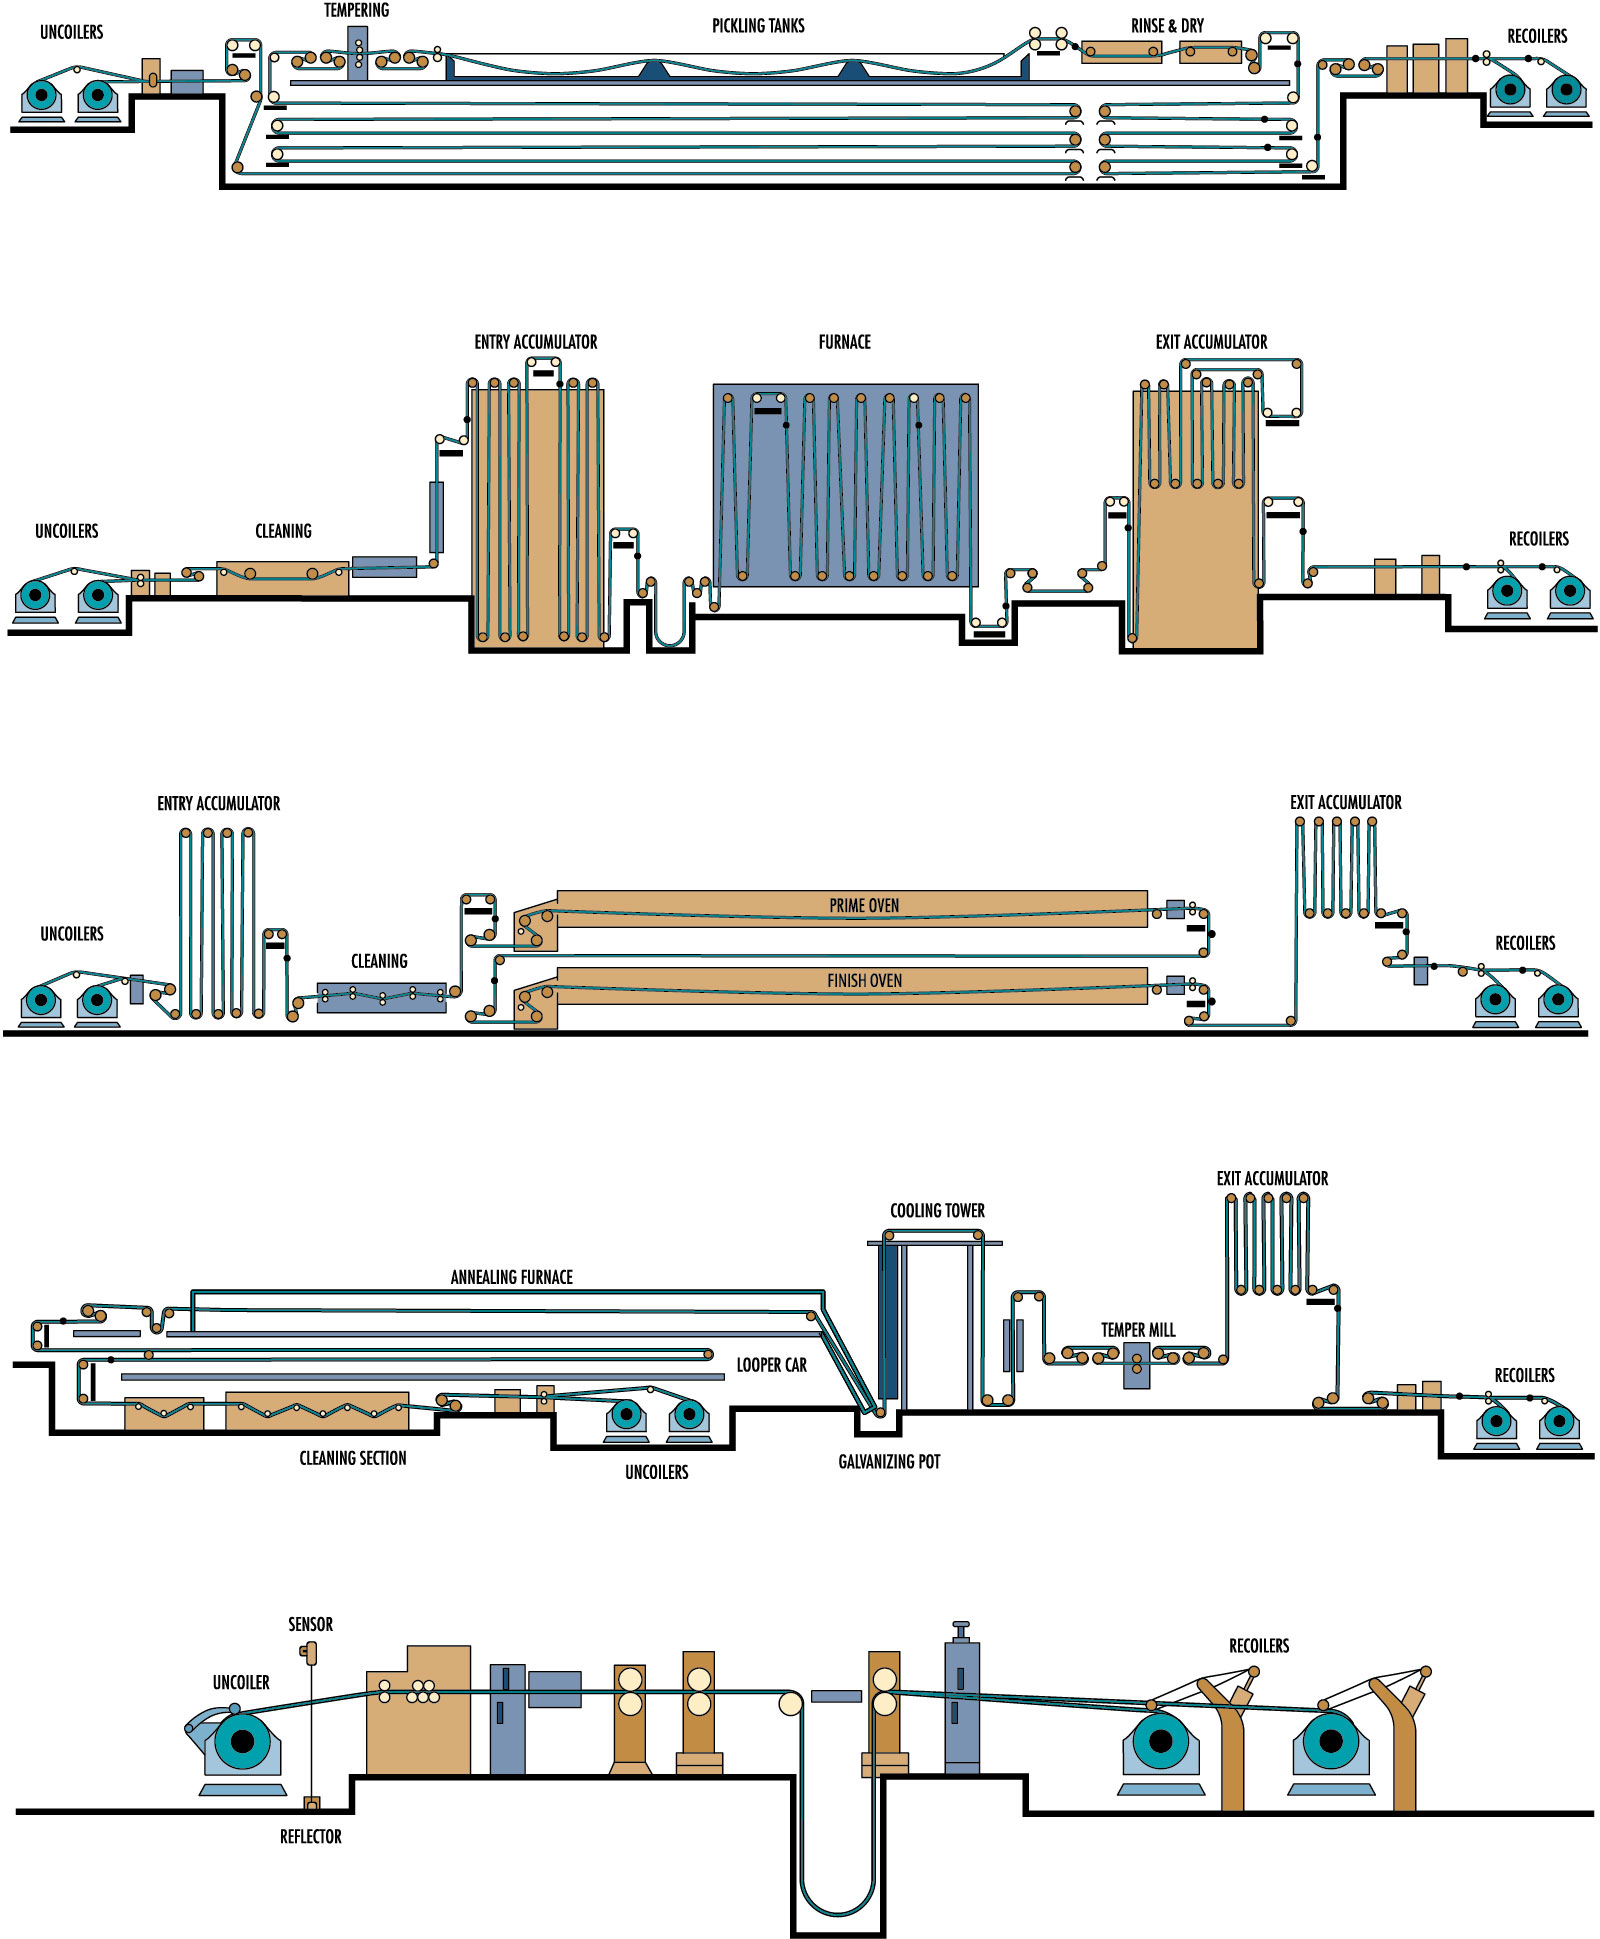 Typical Metals Process Line